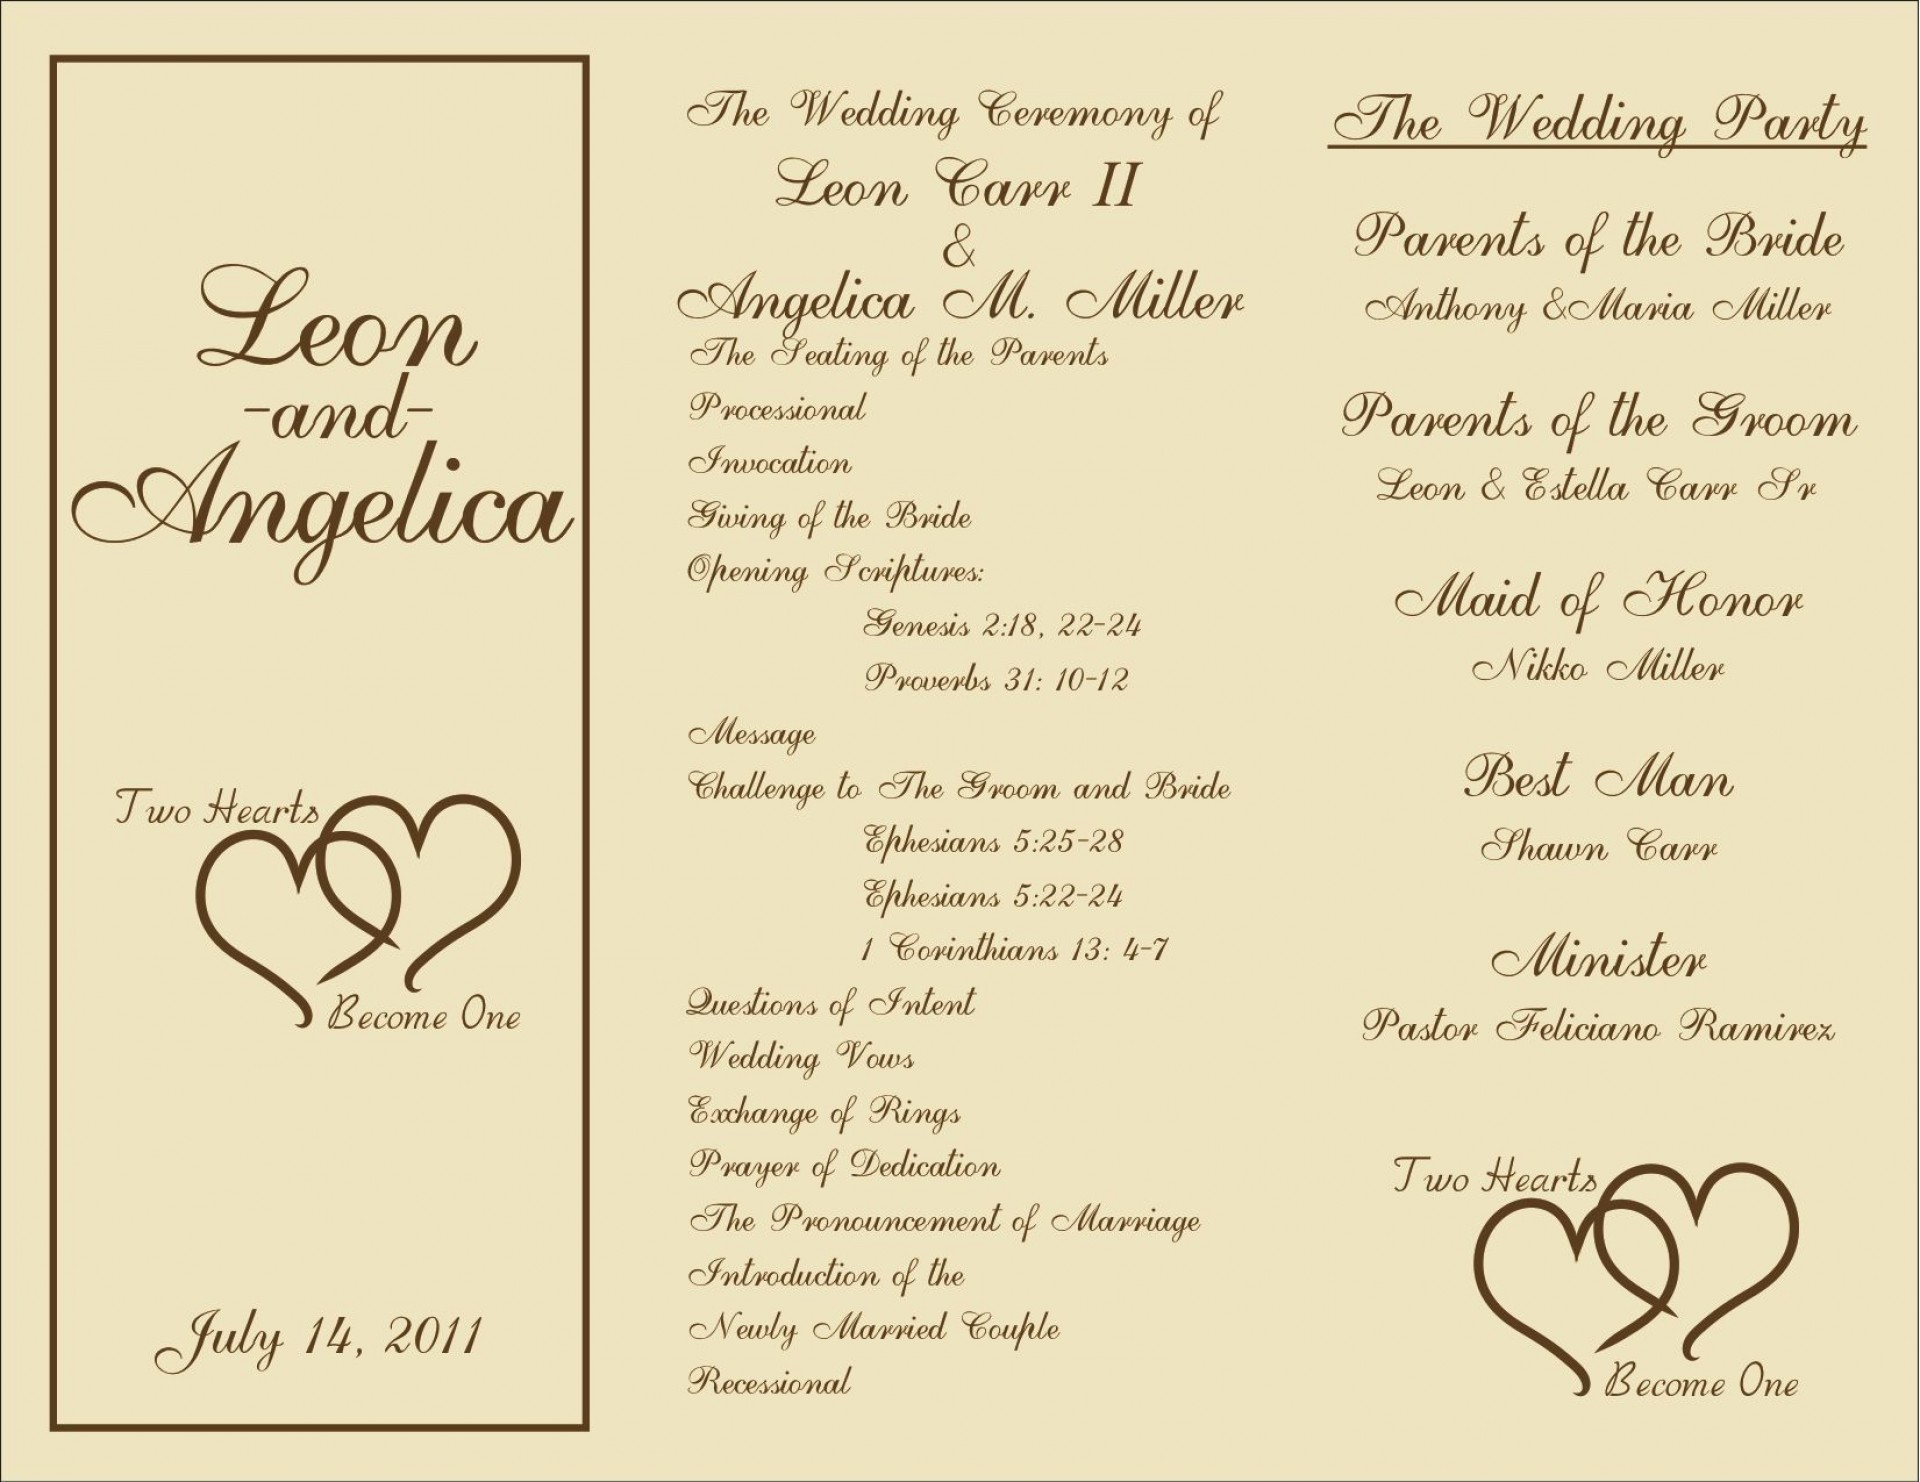 008 Breathtaking Wedding Reception Program Template Image  Templates Layout Free Download Ceremony And1920